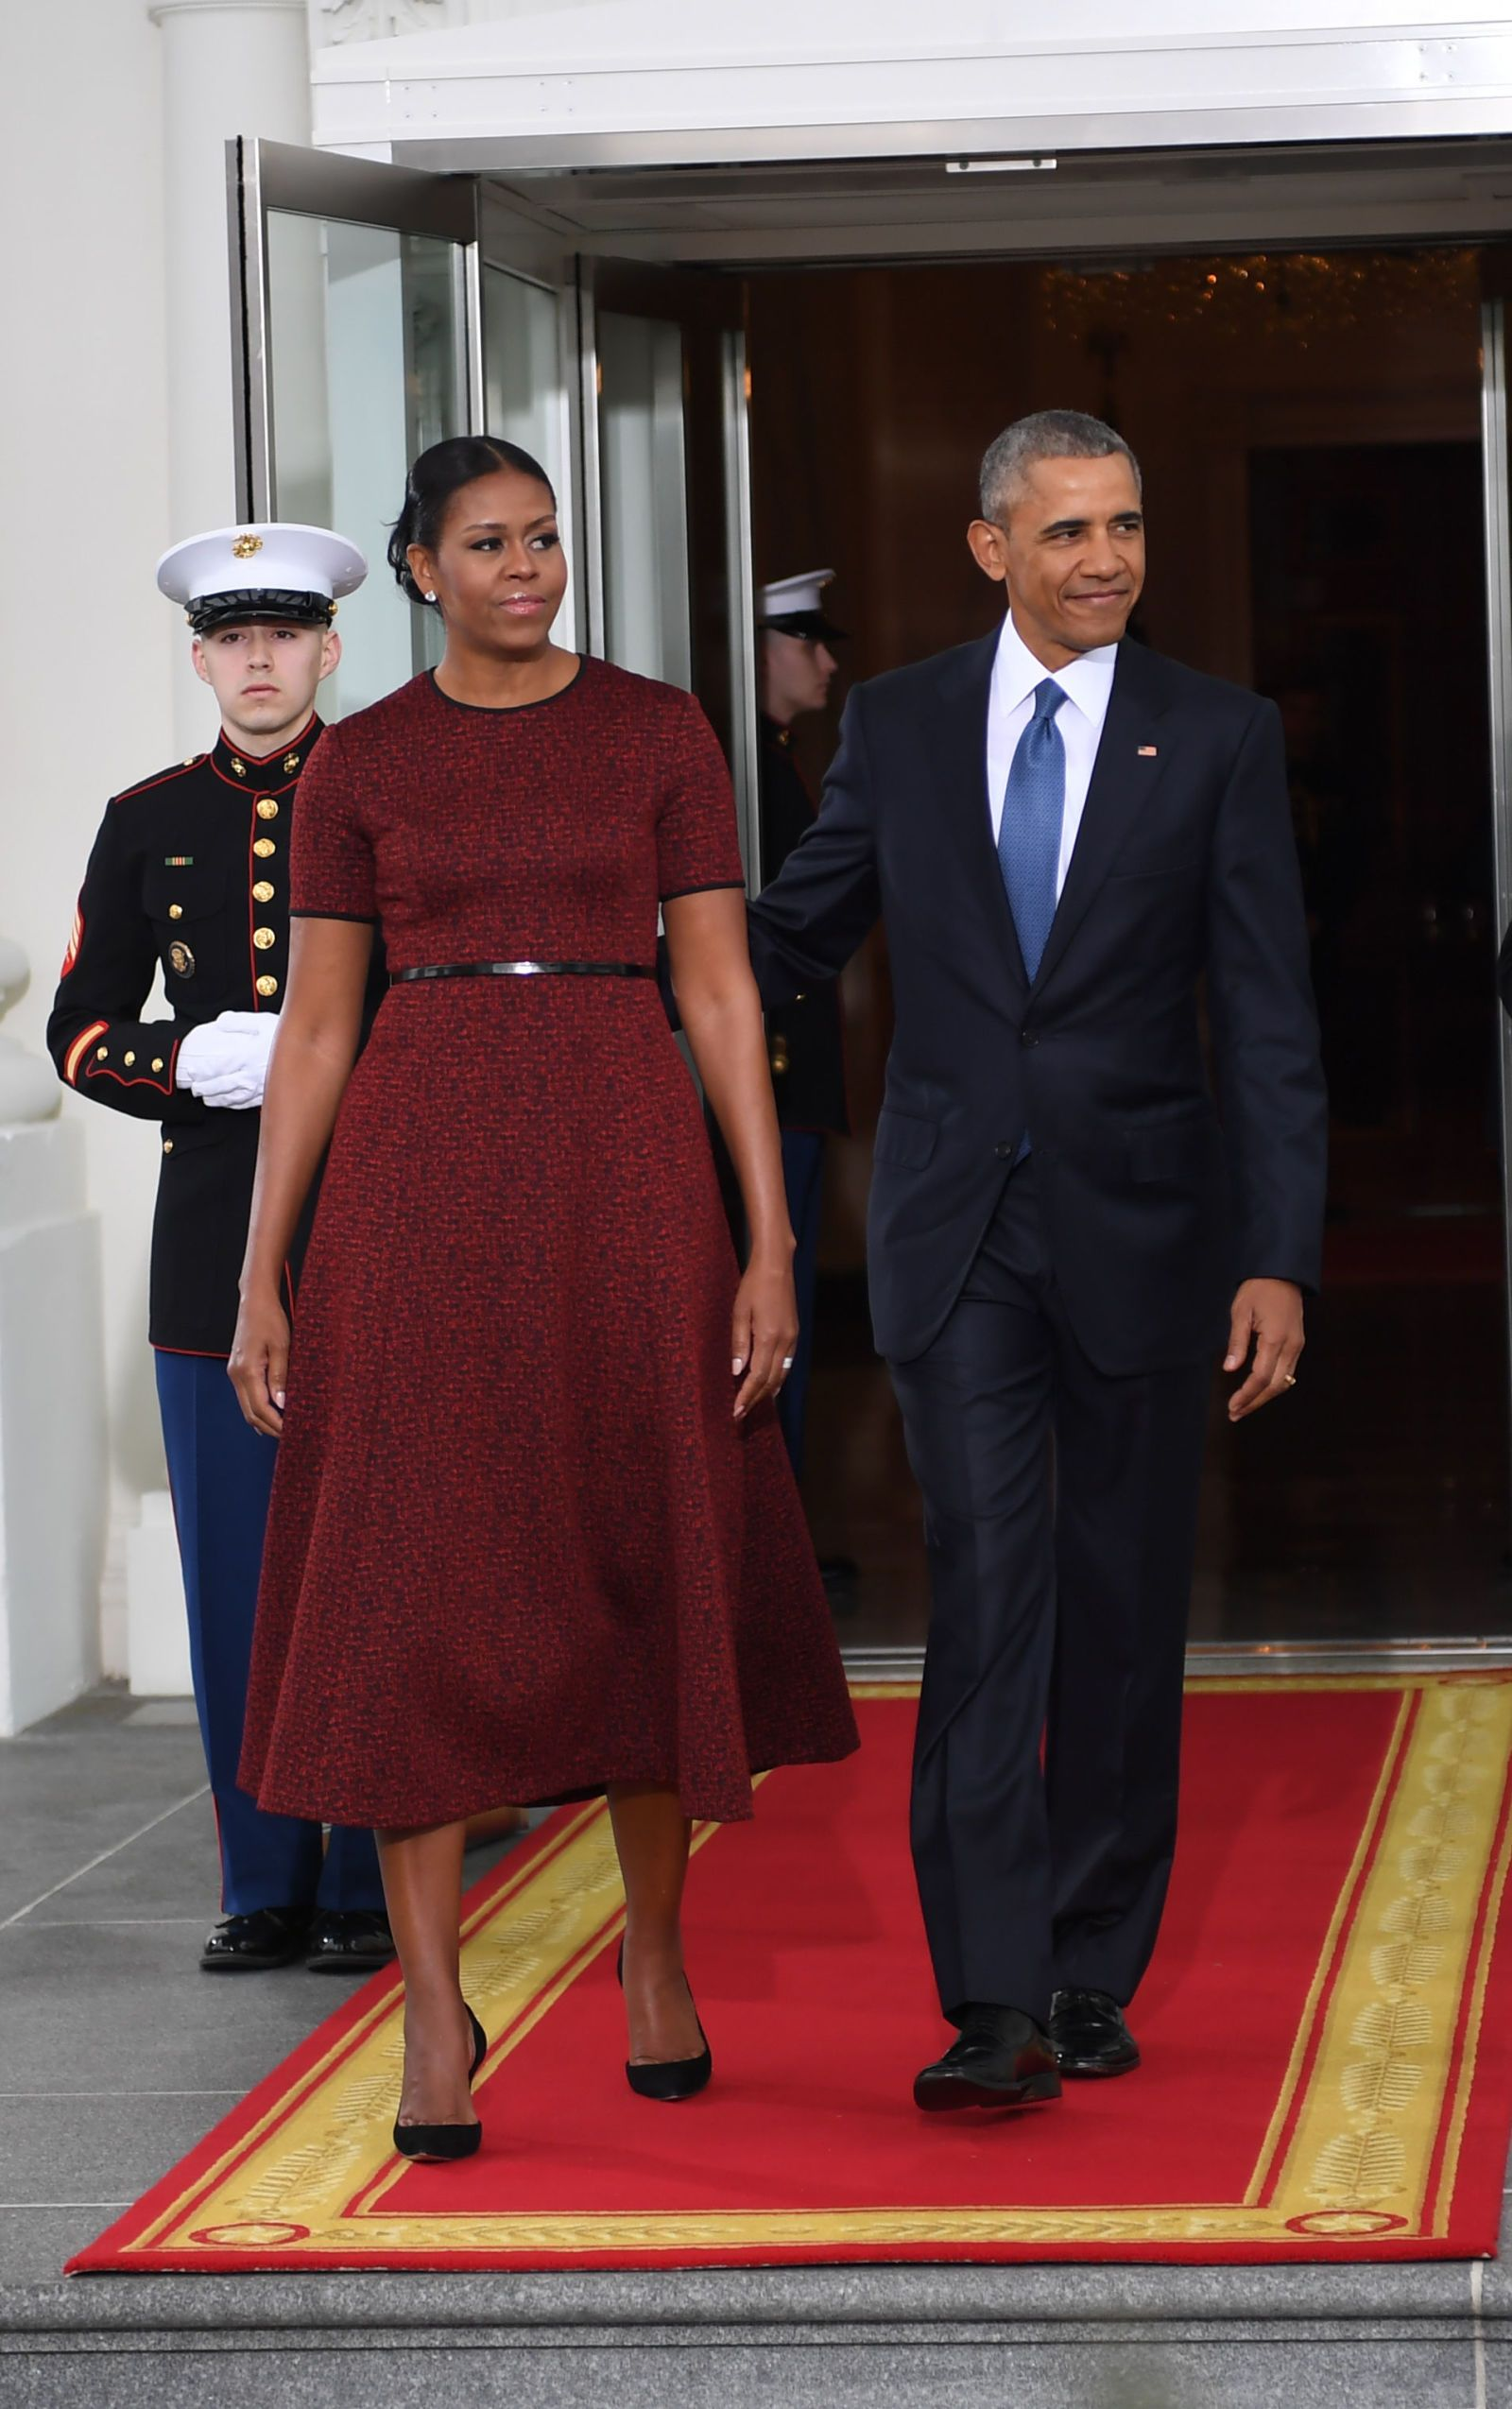 Michelle Obama Wears Red Jason Wu Dress For The Inauguration